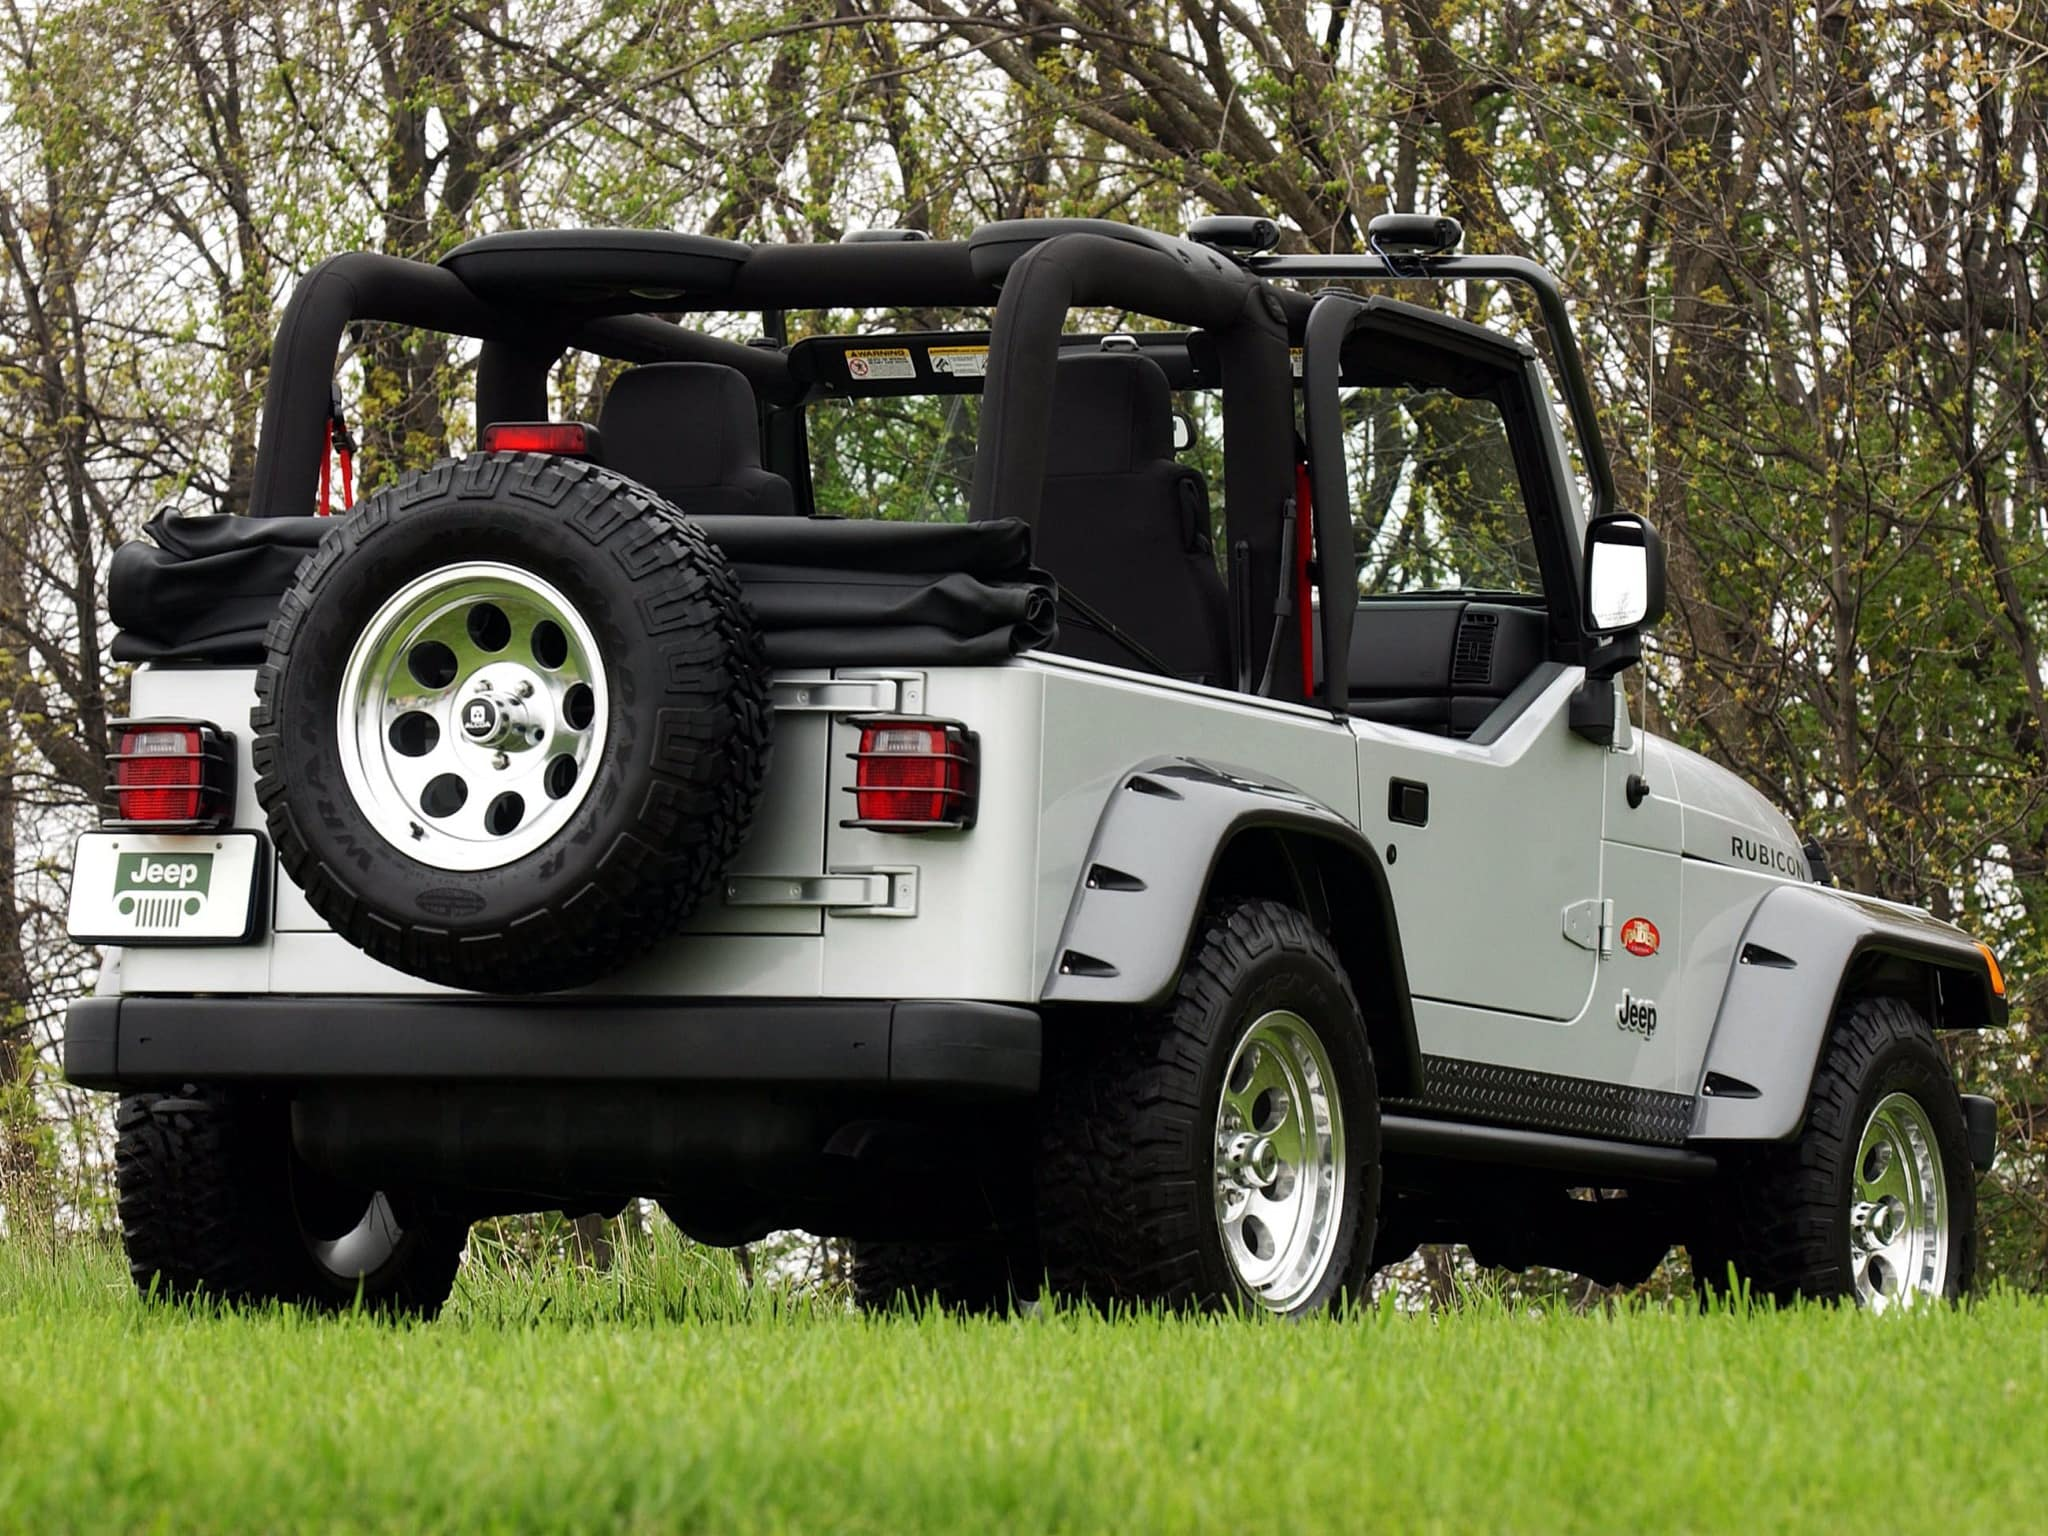 What To Look For In A Used Jeep Wrangler 2006 Fuel Filter The Identification Tj Simply Distinguishes One Generation From Another But Again Ever Proud And Loyal Community Would Tell You That